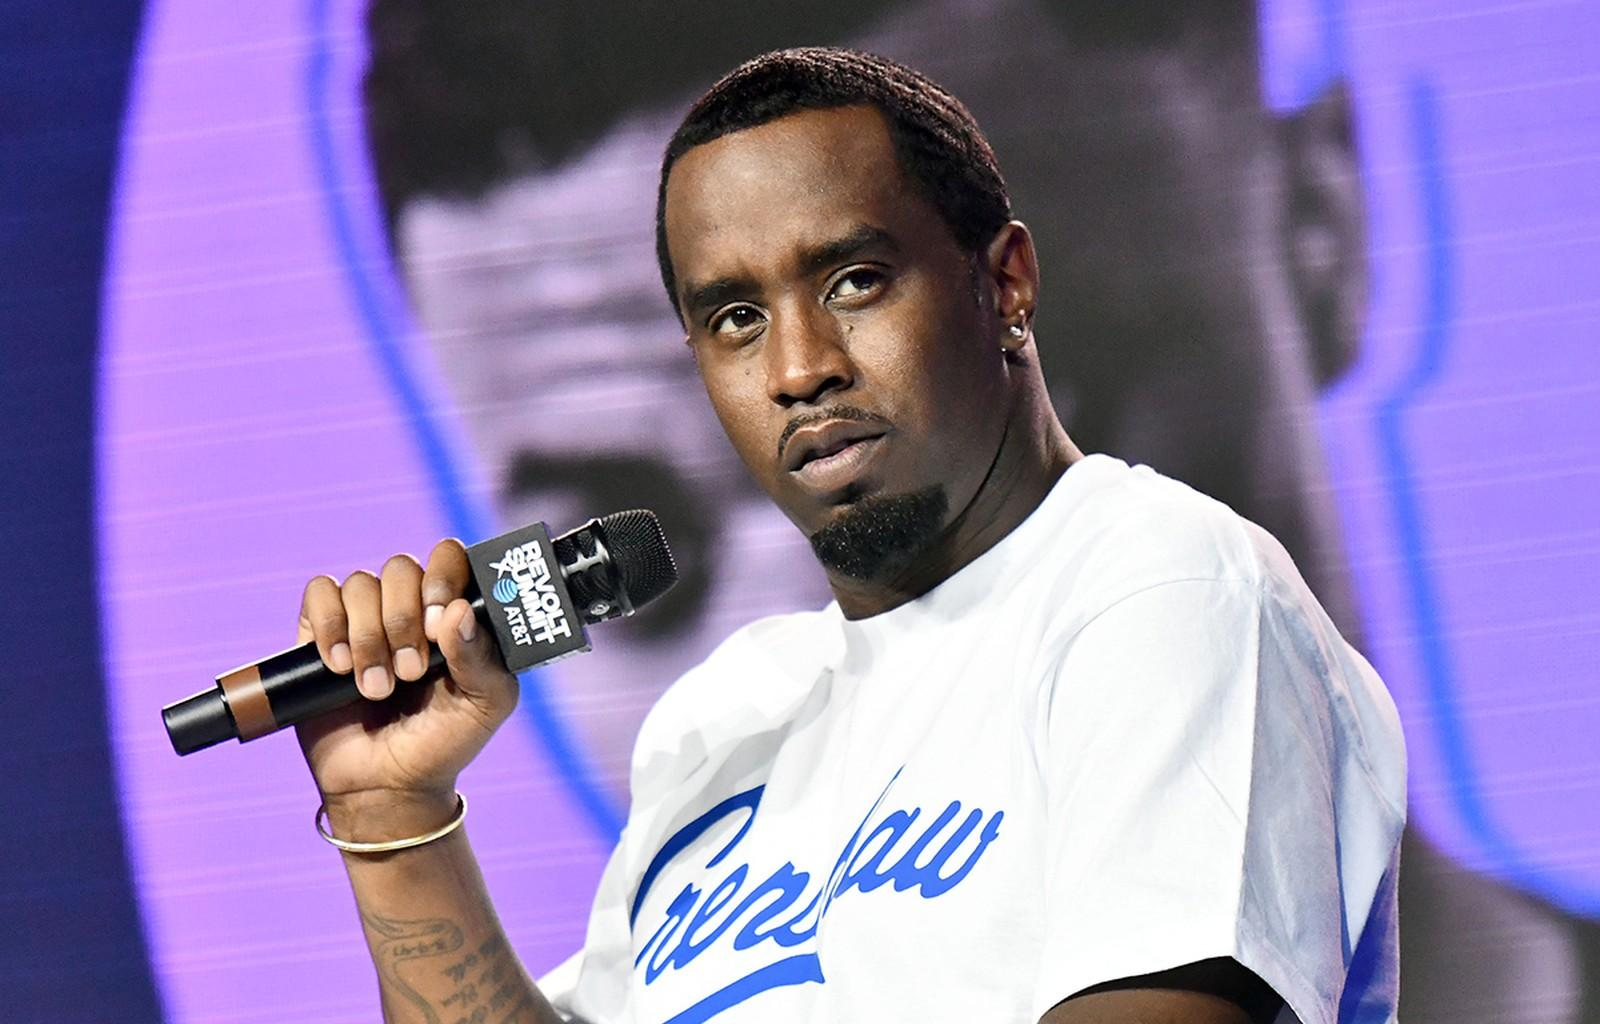 Diddy Addresses Winning His Second Oscar - Check Out The Video